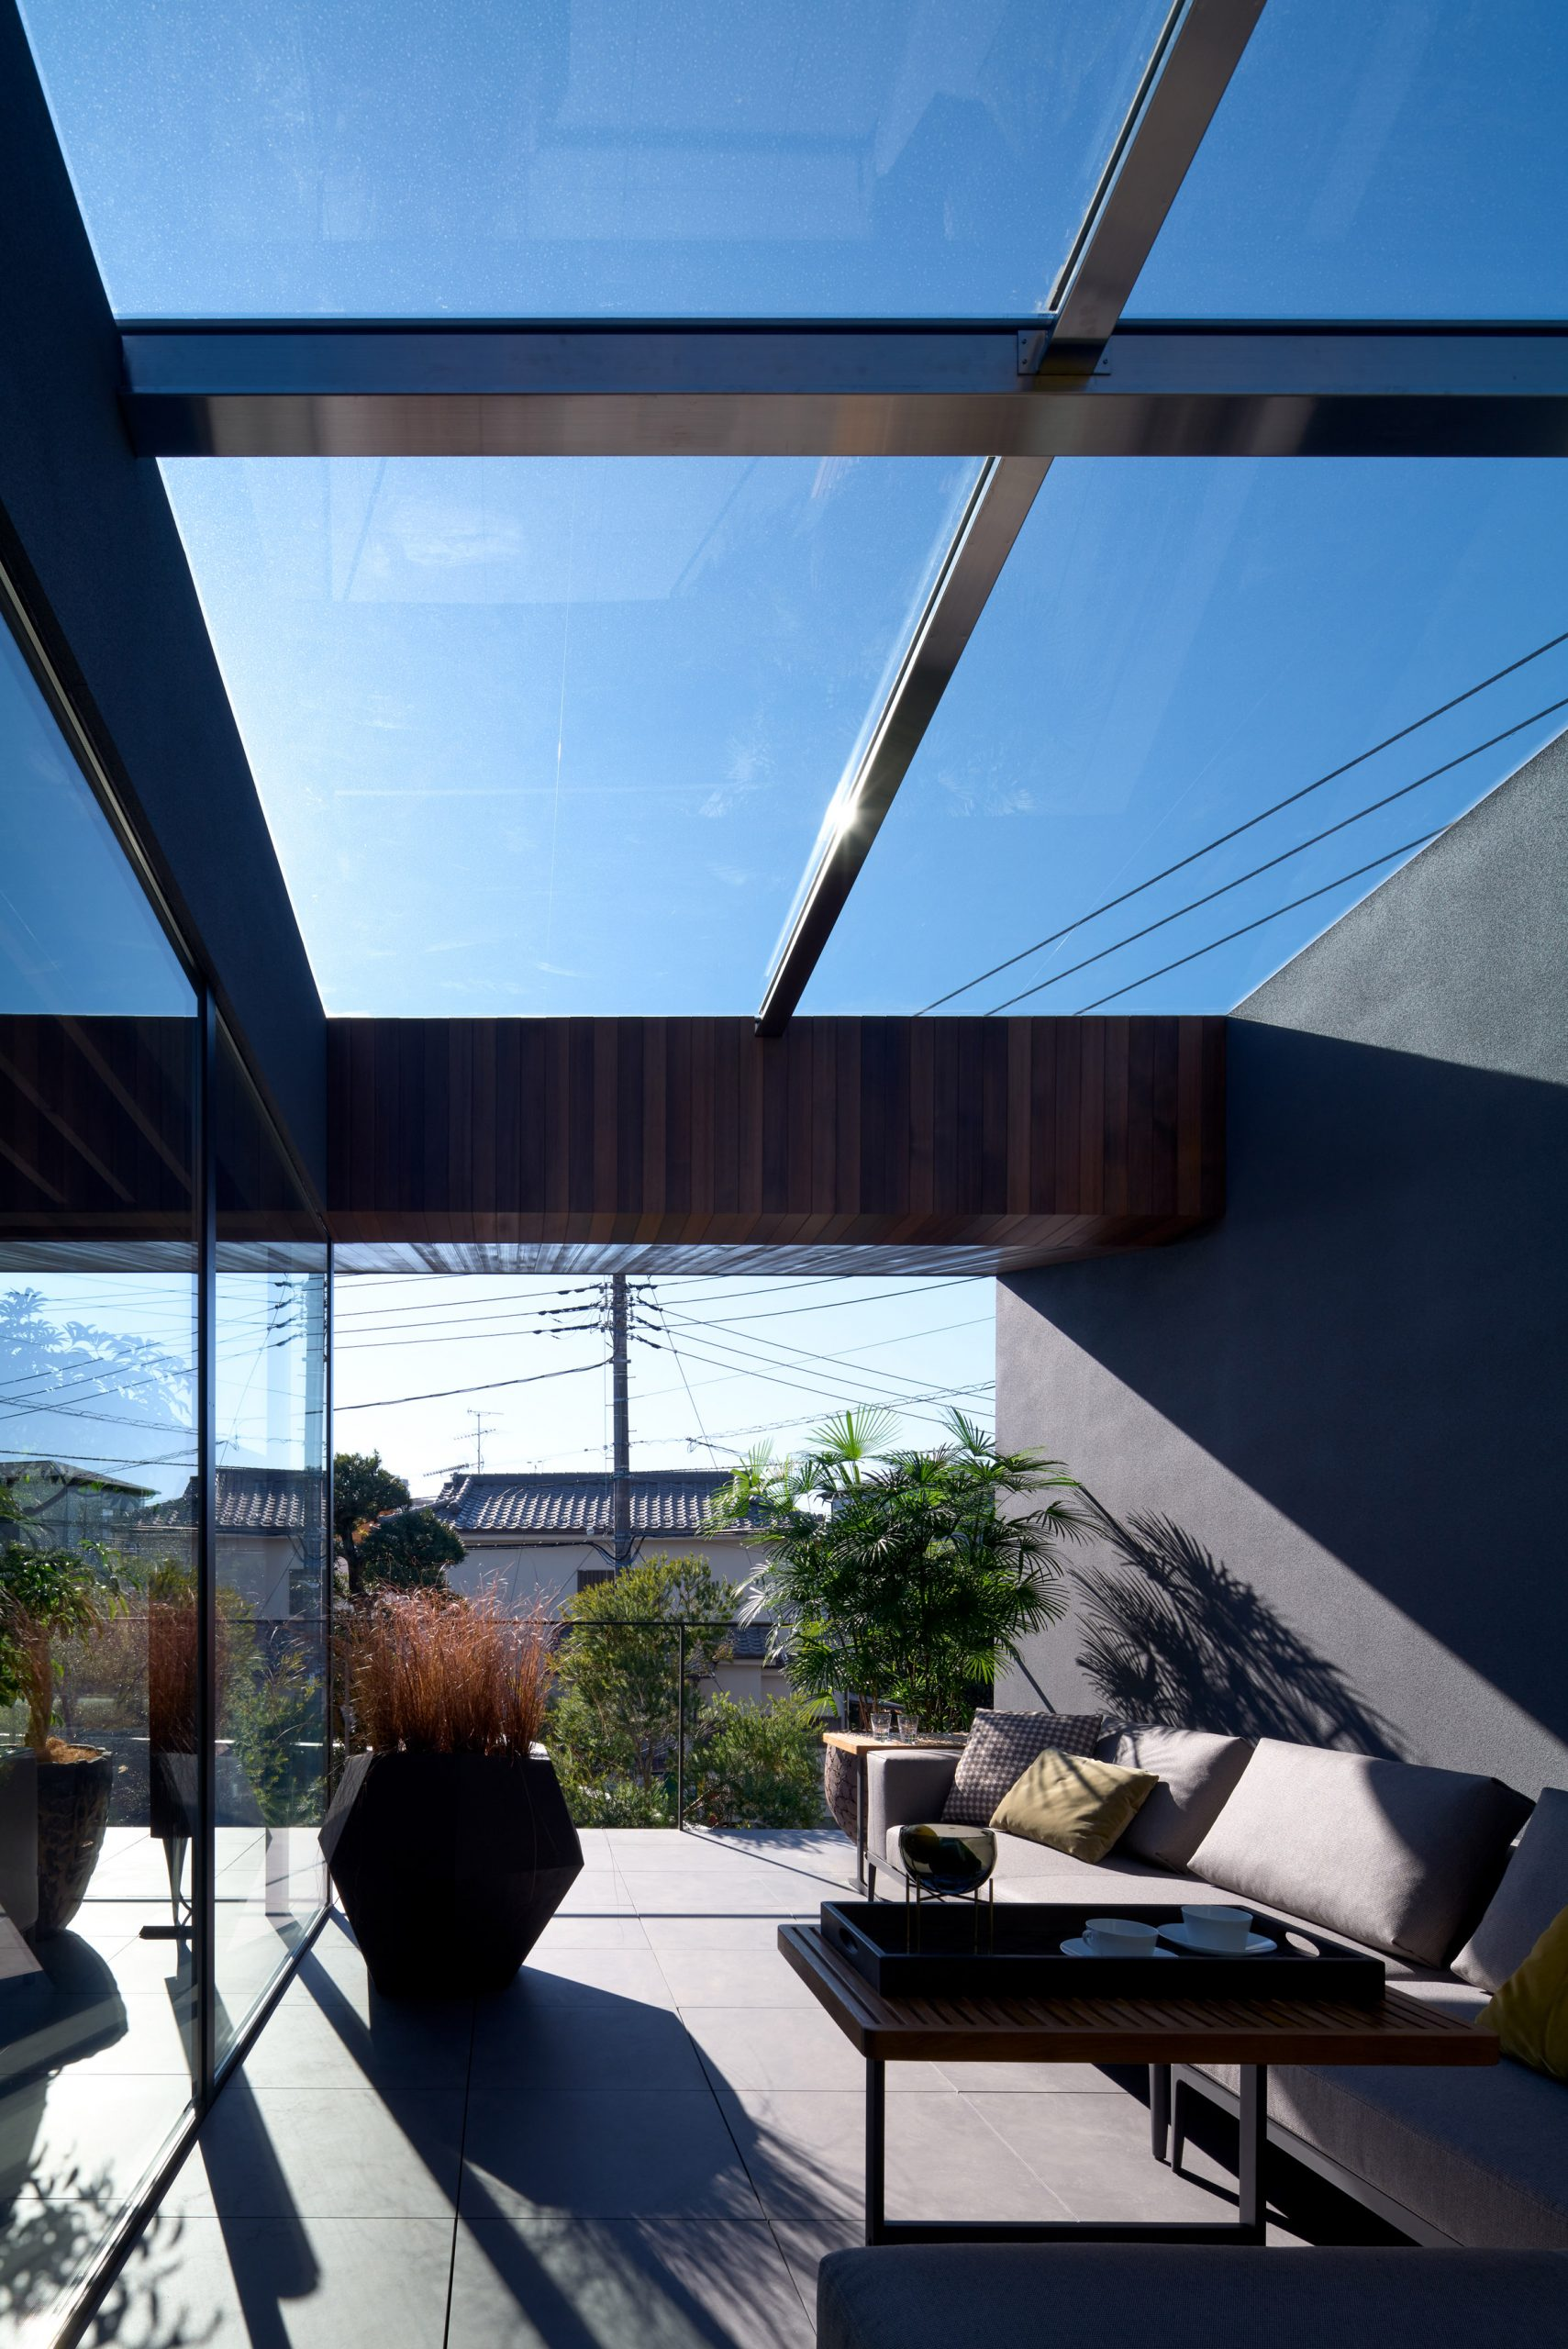 A terrace is covered by a glass roof by Apollo Architects & Associates